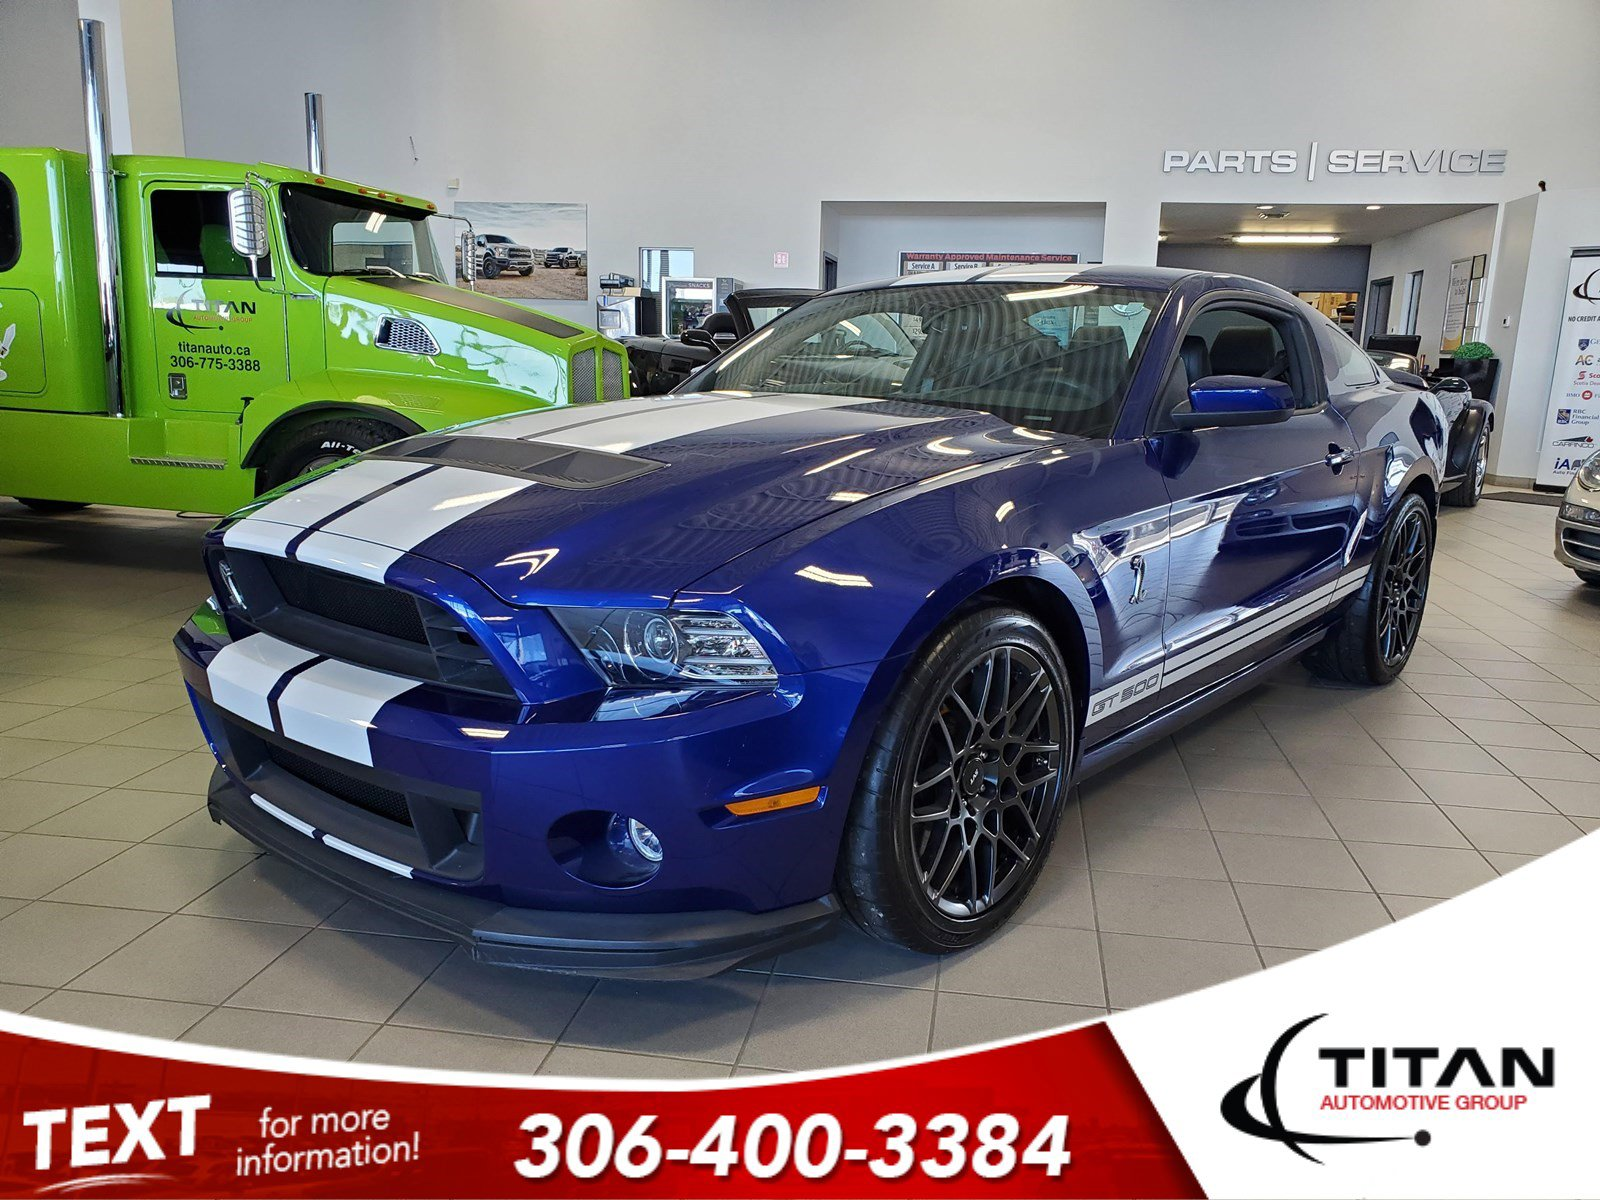 Pre-Owned 2013 Ford Mustang Shelby GT500 | 5.8L Supercharged V8 662HP | Launch Control | Brembo | Rare